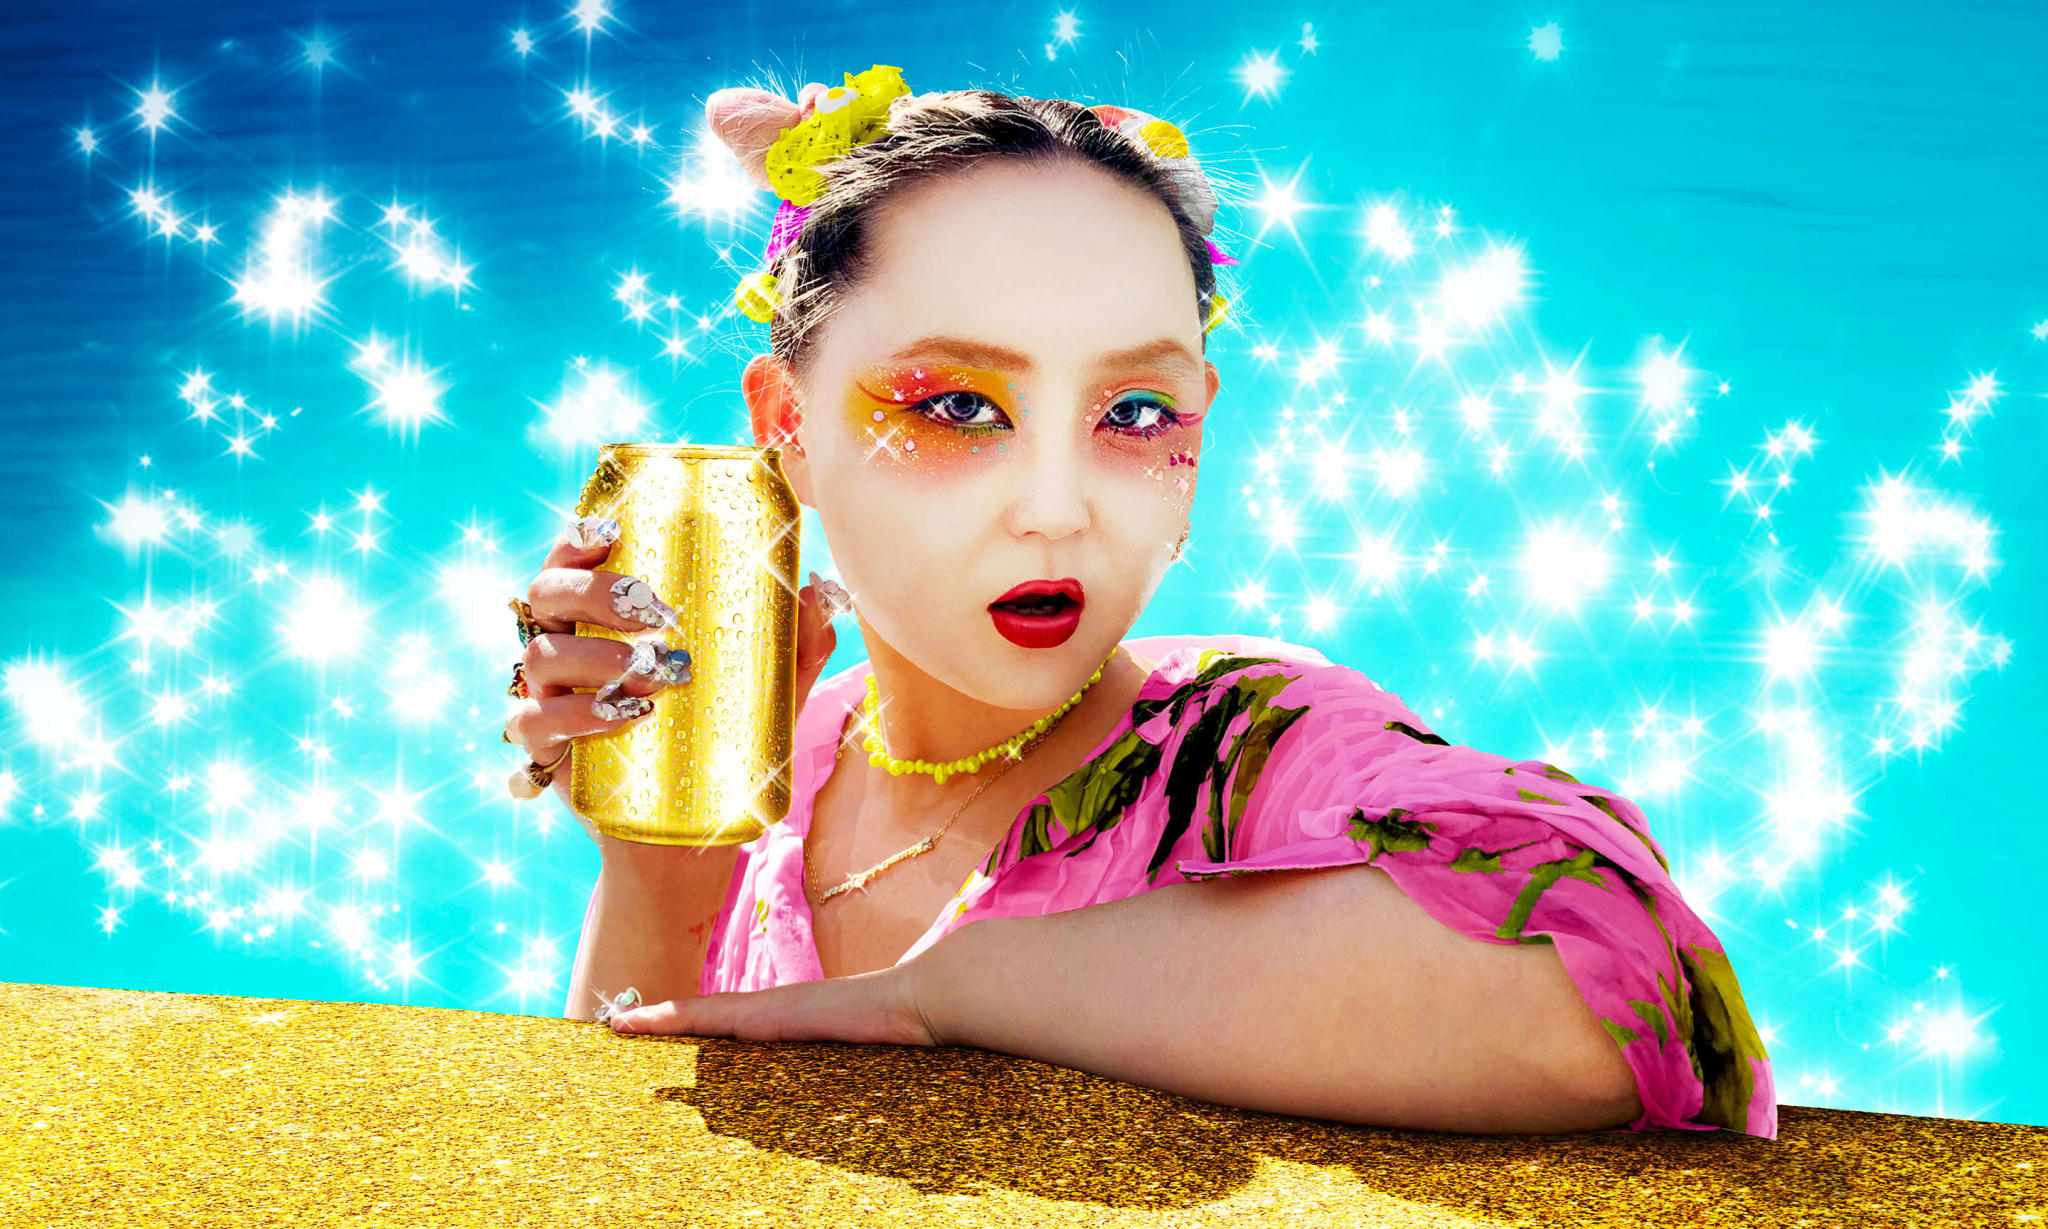 A girl in geisha make-up holding a golden drinks can.